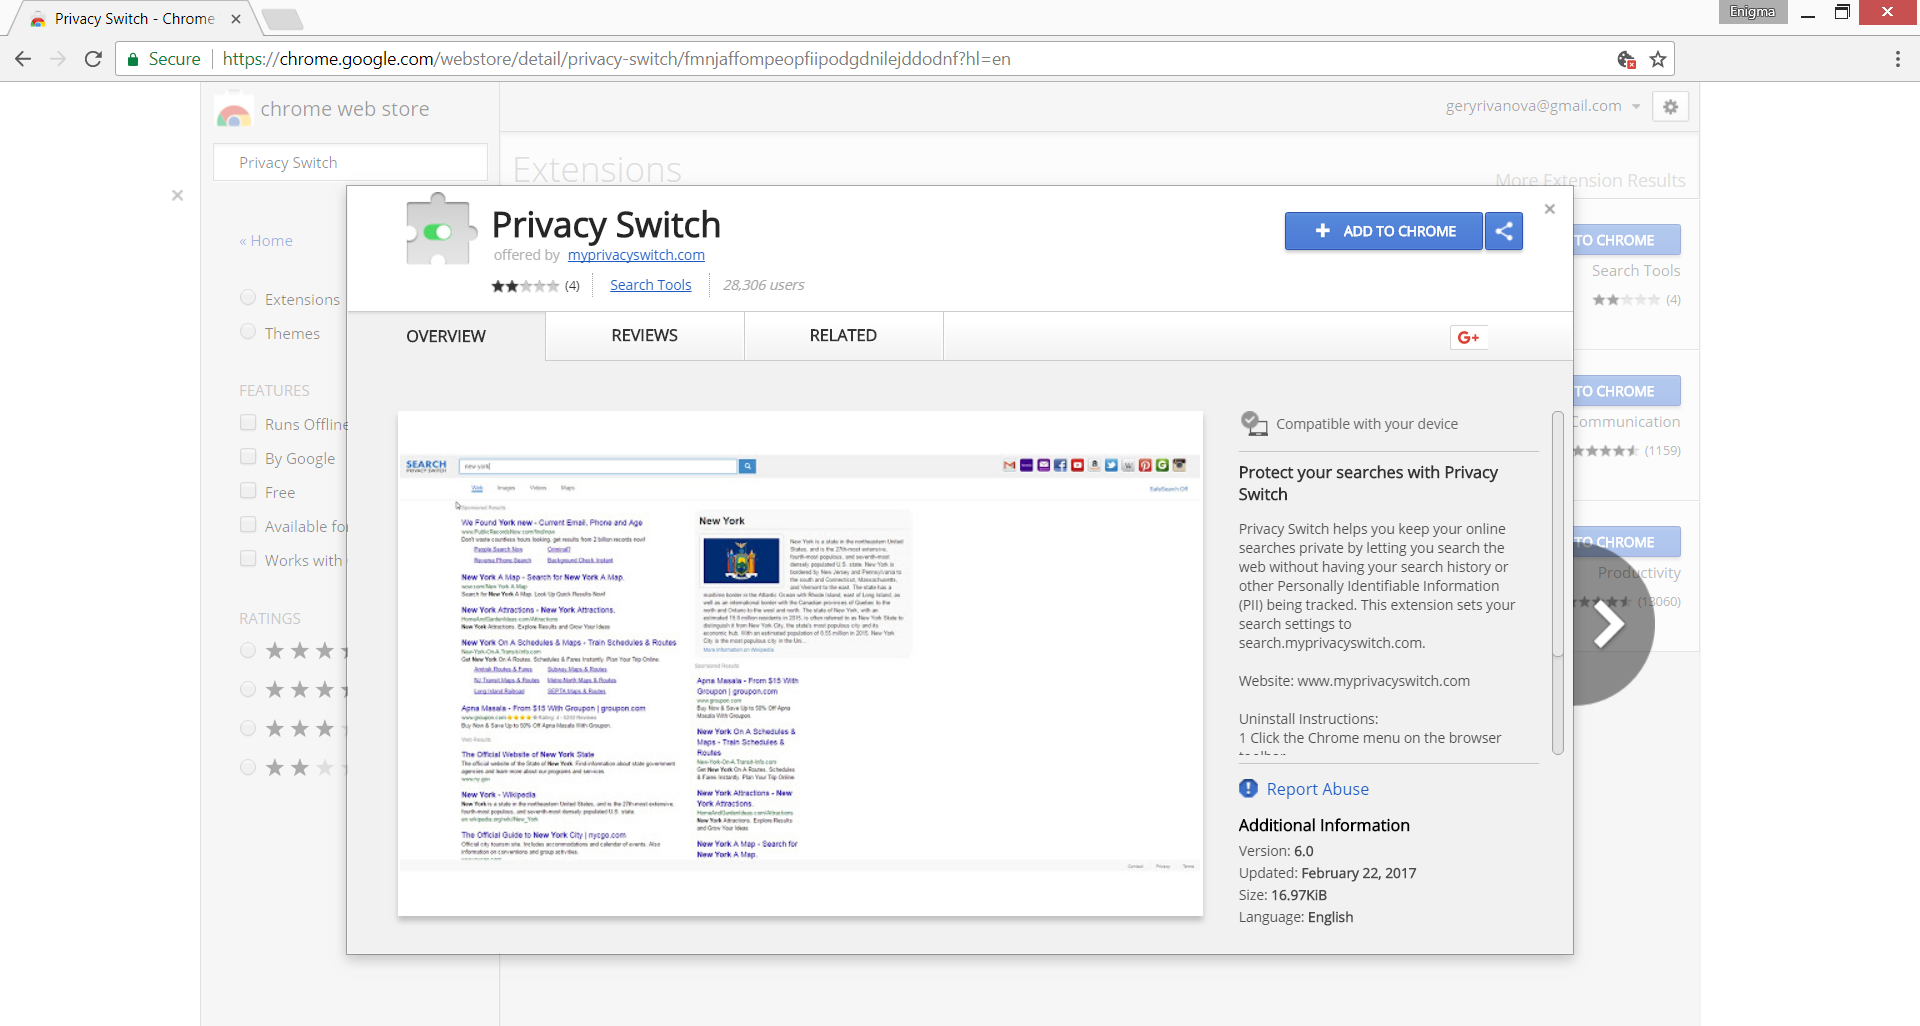 privacy switch chrome web store browser extension